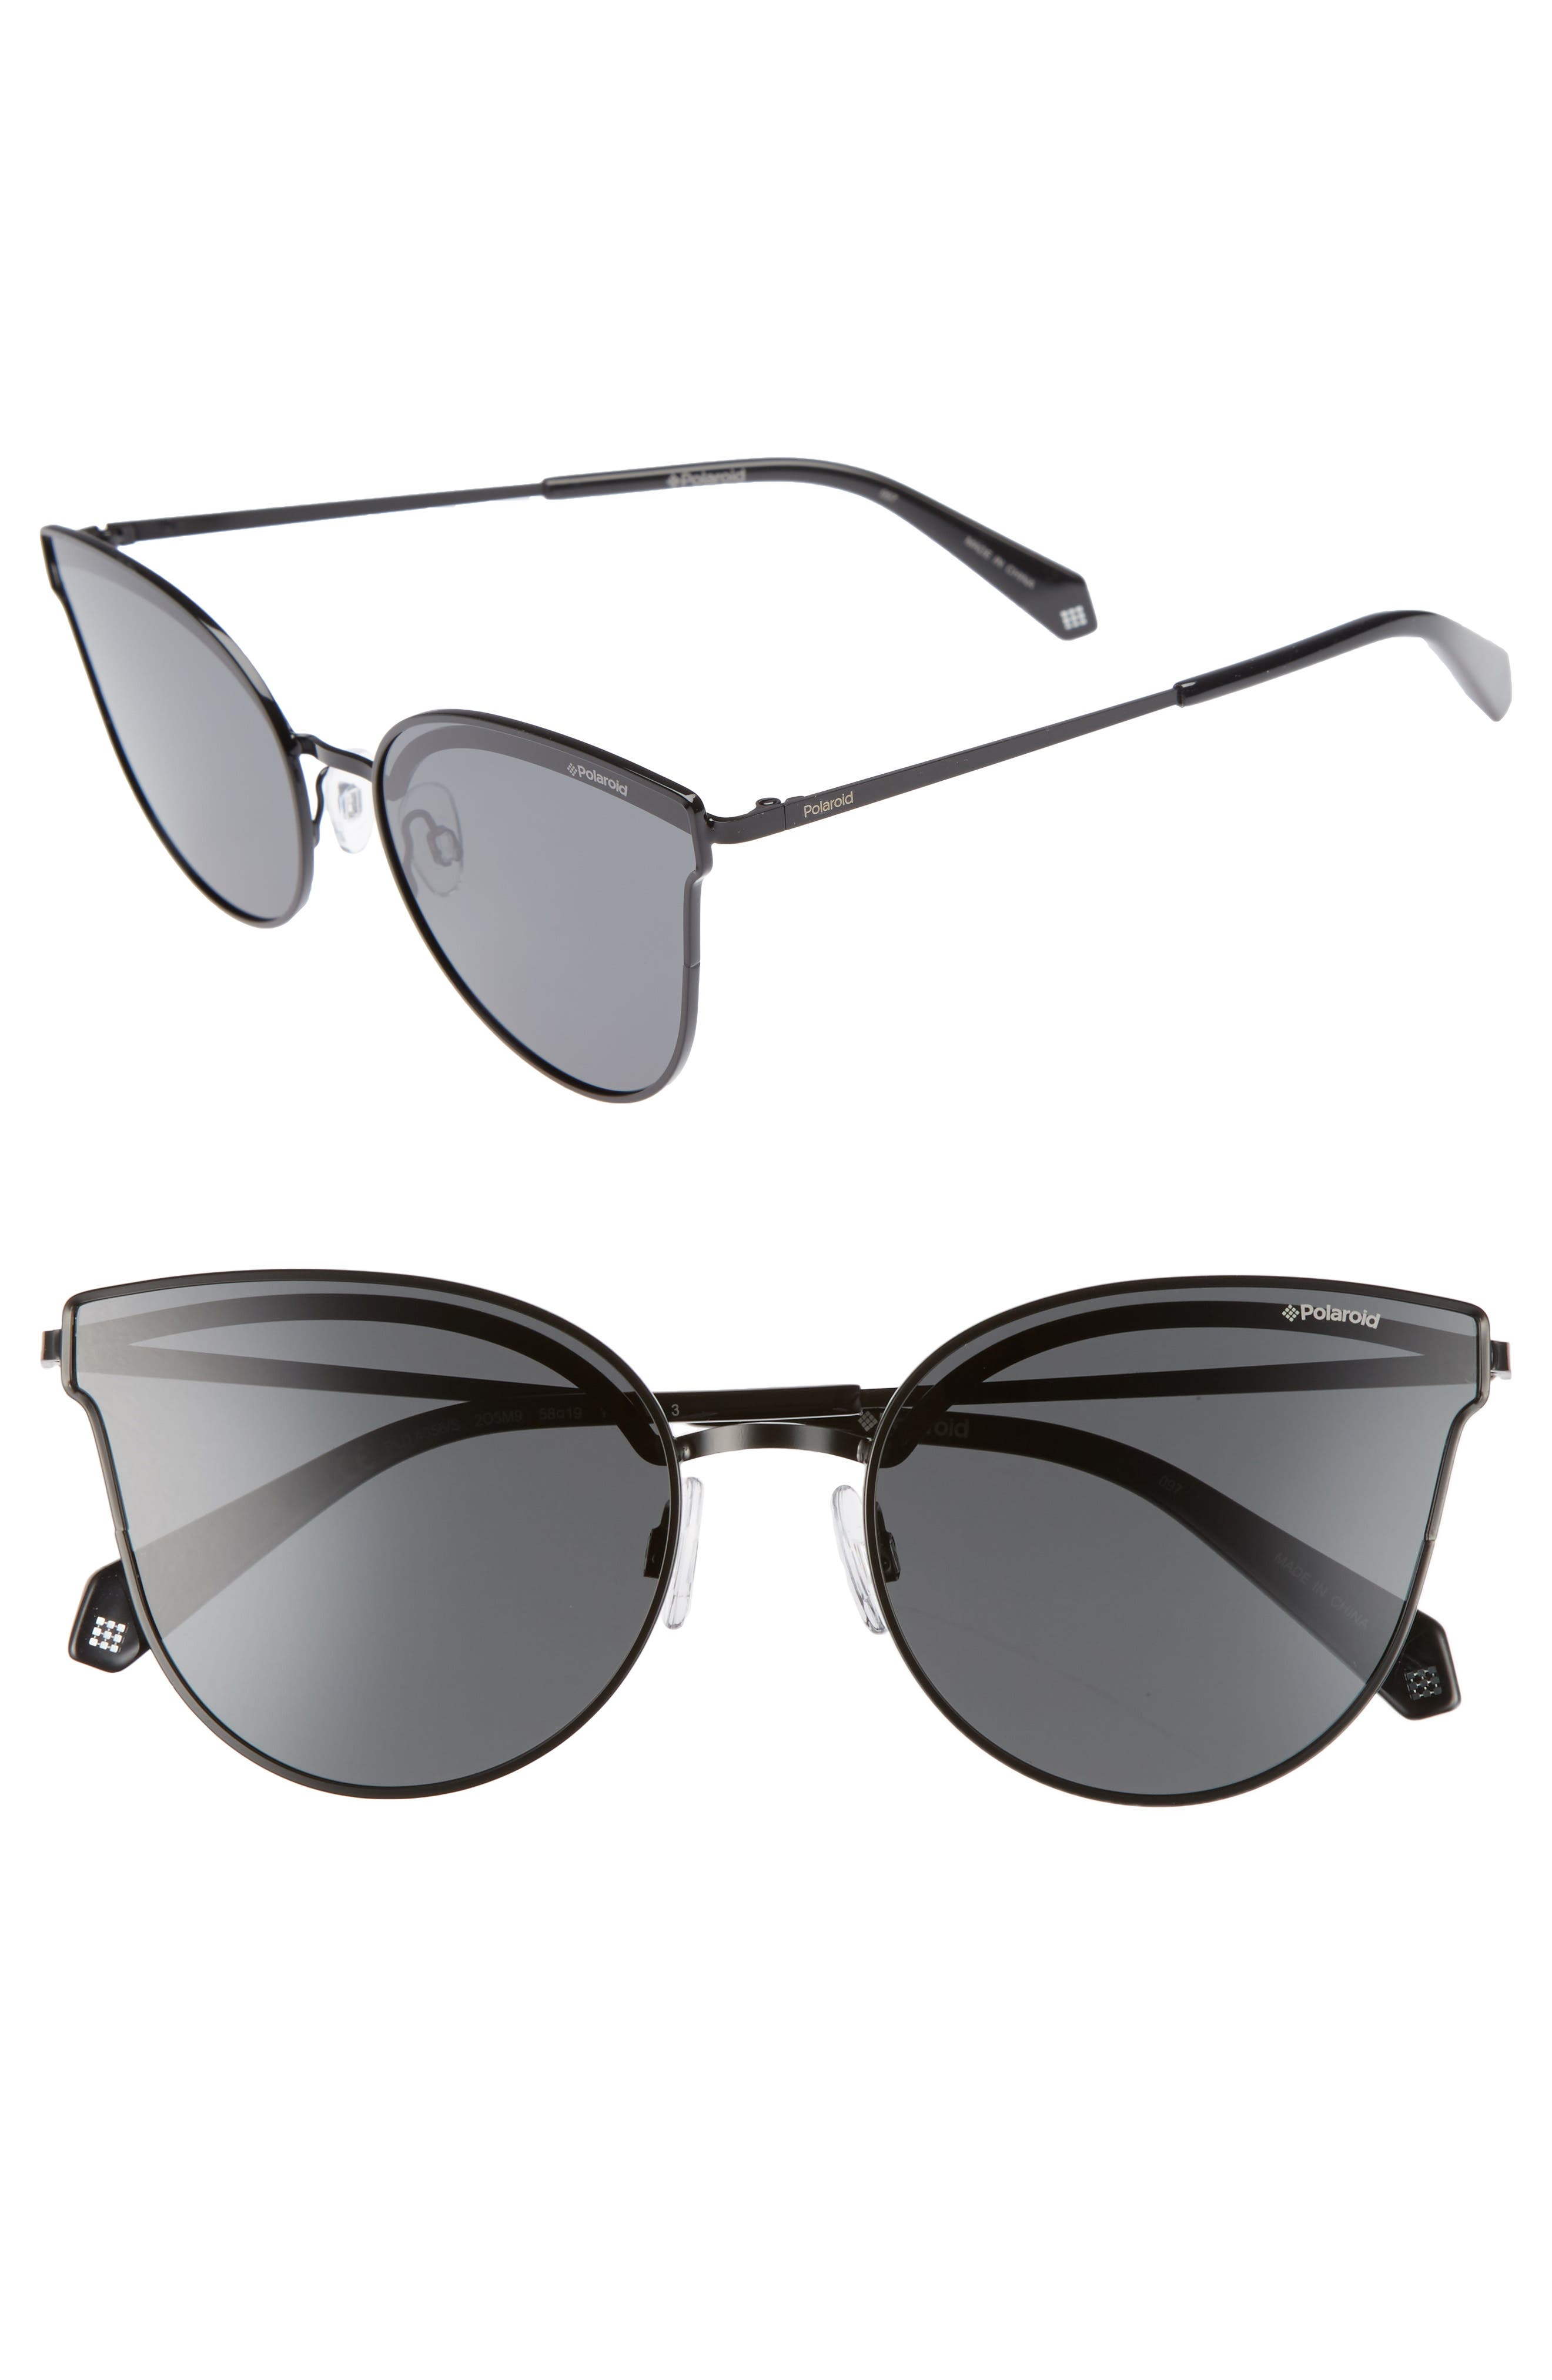 58mm Polarized Butterfly Sunglasses,                             Main thumbnail 1, color,                             001